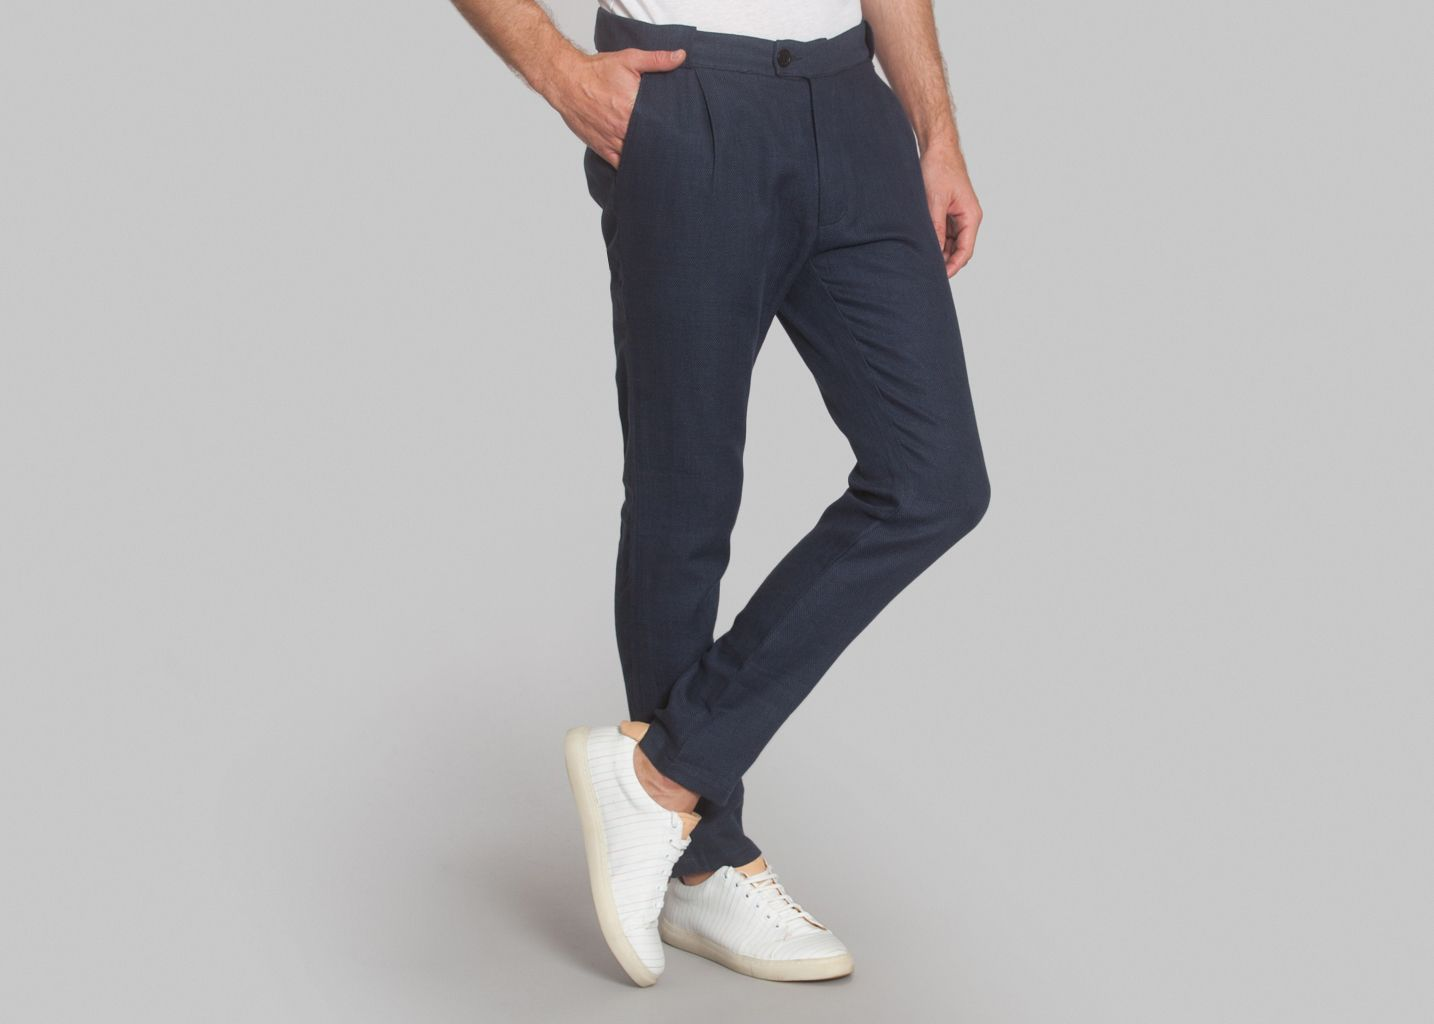 Trousers - Shorts Commune De Paris sMHeS